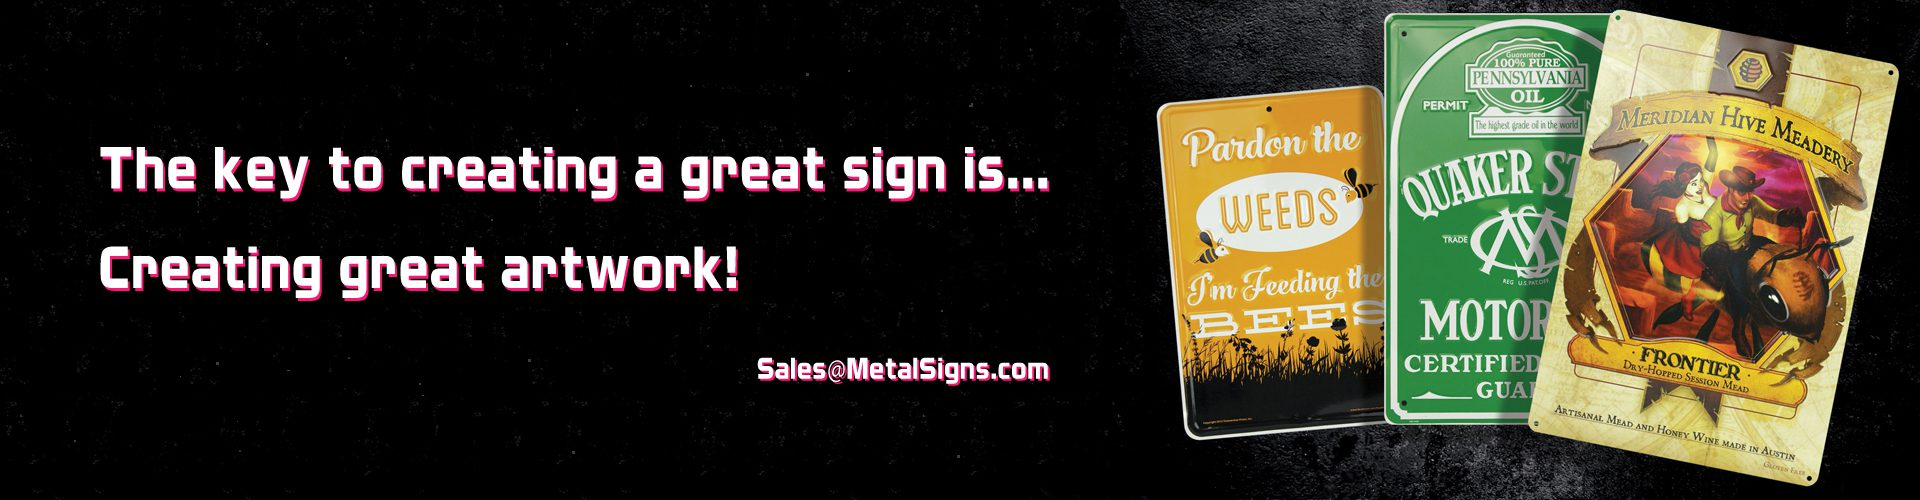 Artwork Information and requirements for ordering custom aluminum signs and plates.